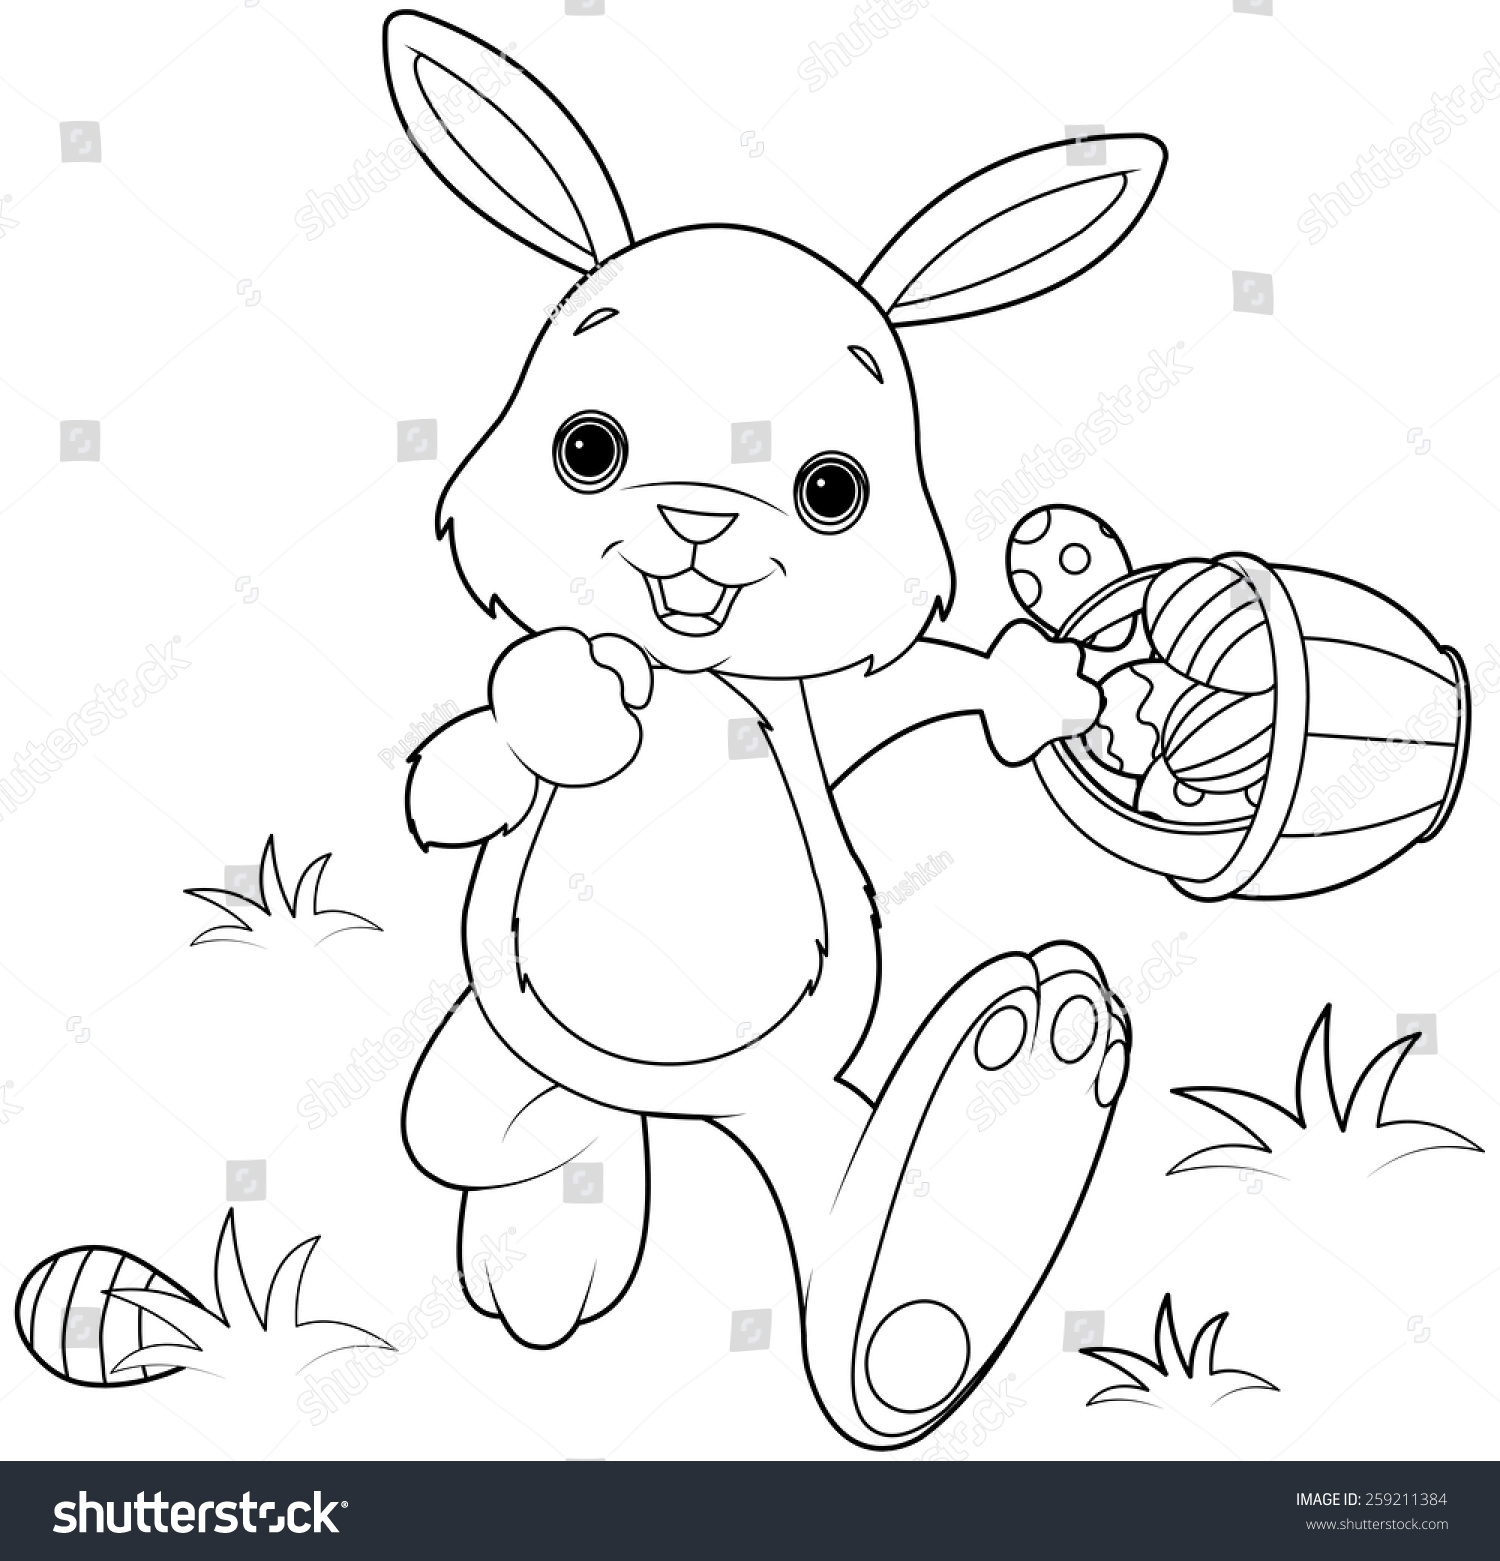 Coloring Page Easter Bunny Hiding Eggs Stock Illustration